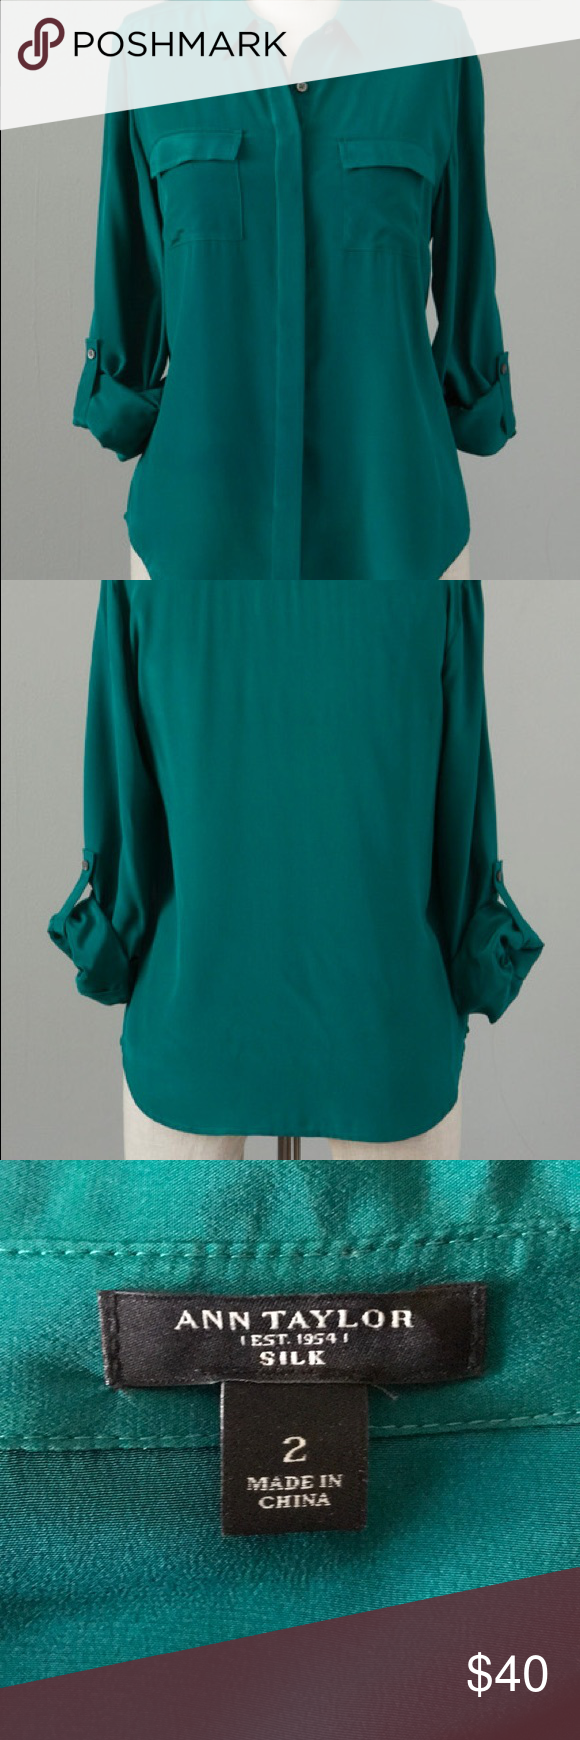 2ee195fcb7dfc Emerald green silk blouse Emerald green silk blouse with sleeves that roll  up or down. Can dress up any pant or jeans. Dry cleaned and ready to go. Ann  ...